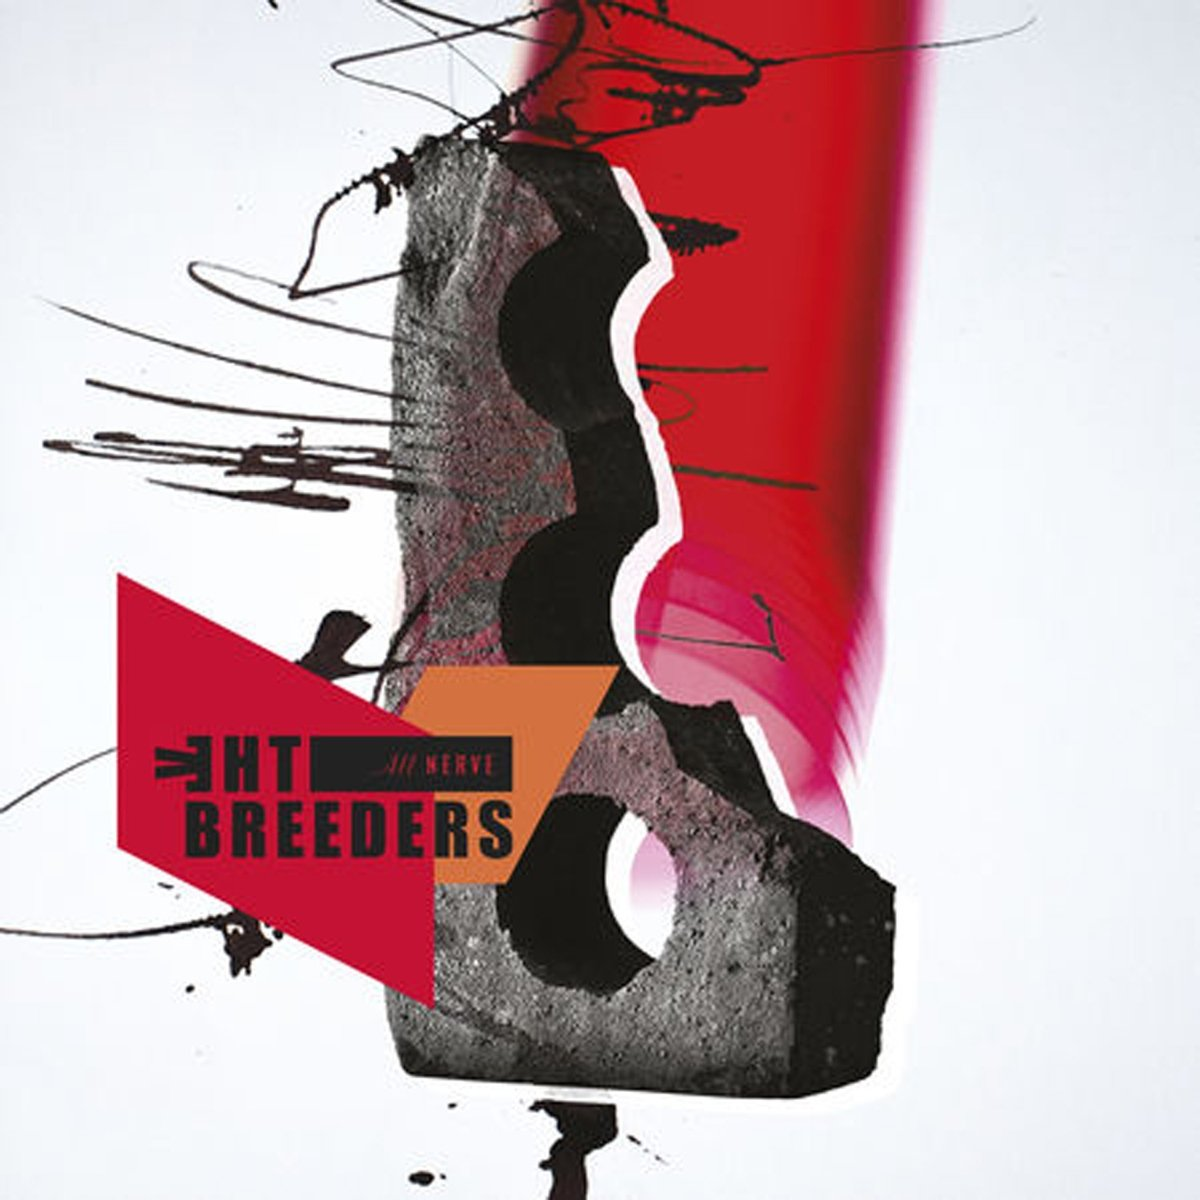 Vinilo : The Breeders - All Nerve (LP Vinyl)